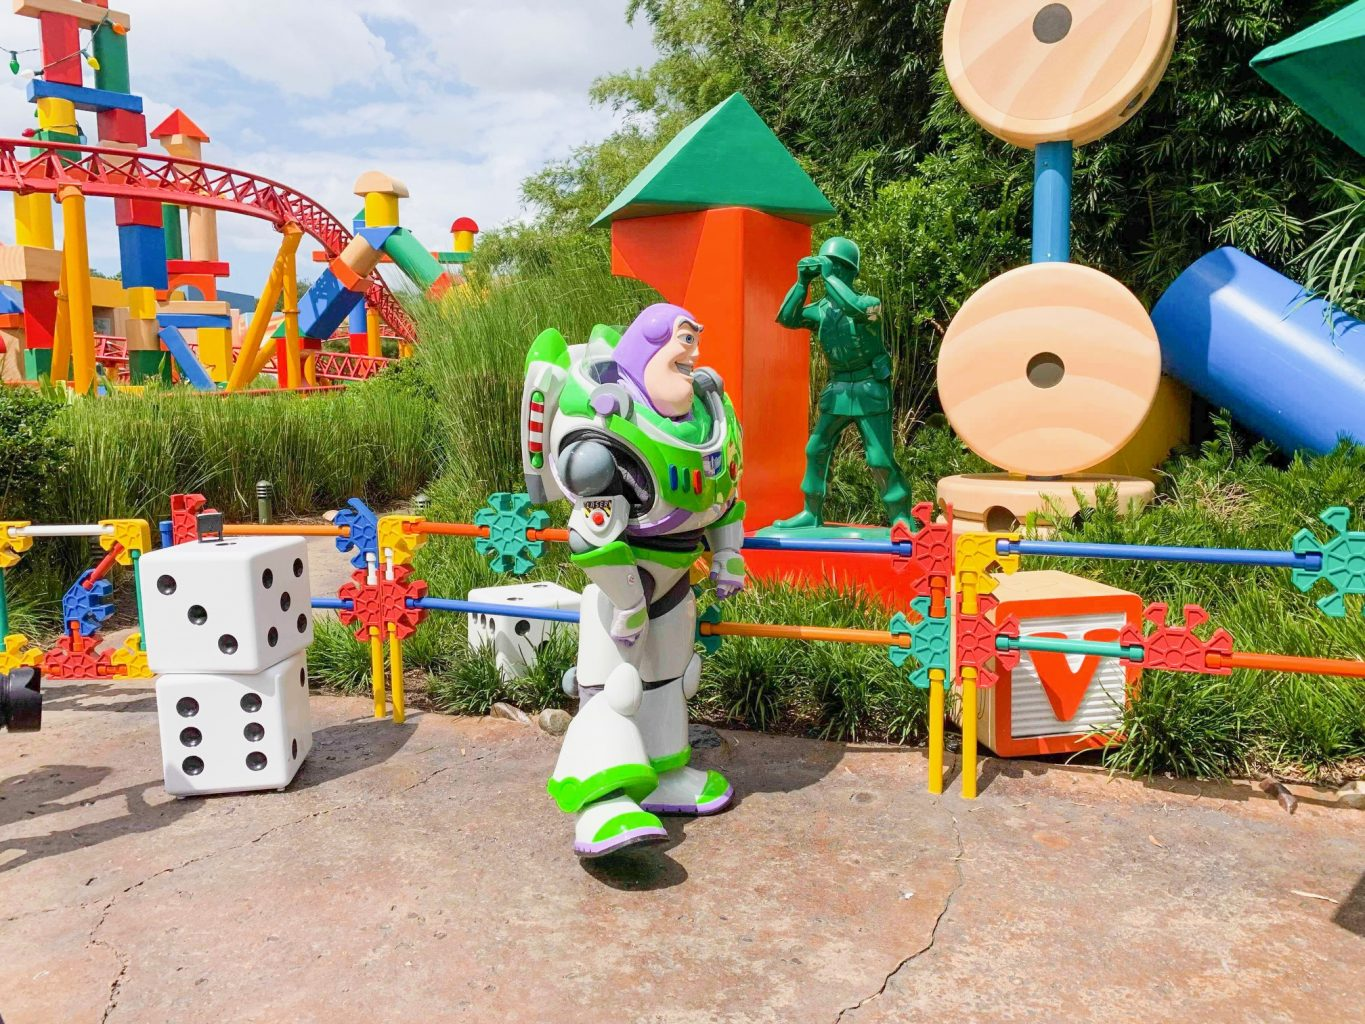 Hollywood Studios Fastpass Buzz Lightyear outside entrance to Toy Story Land